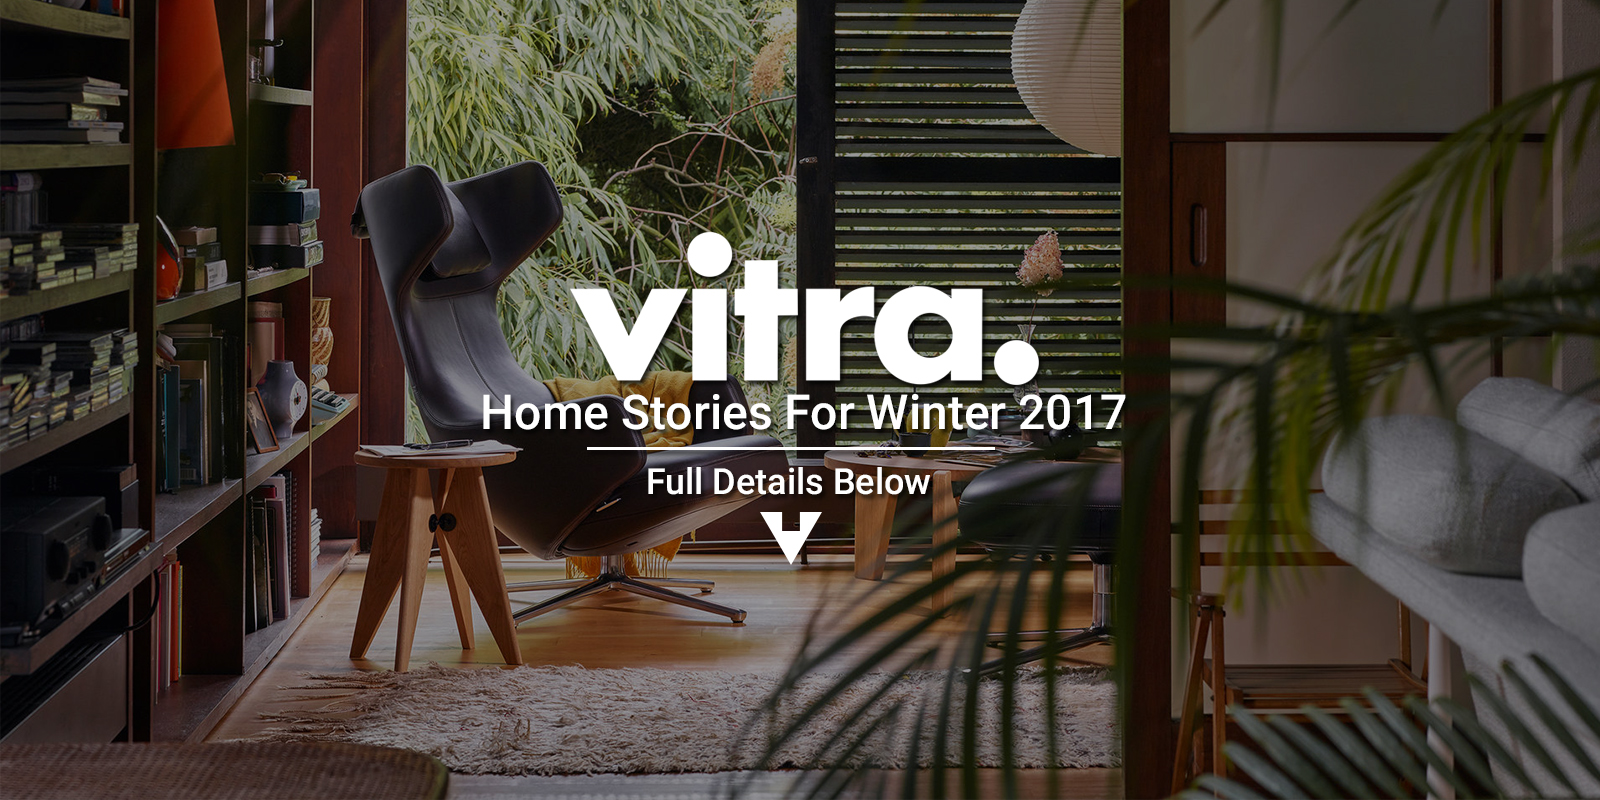 vitra-home-stories-for-winter-2017-info-page.jpg